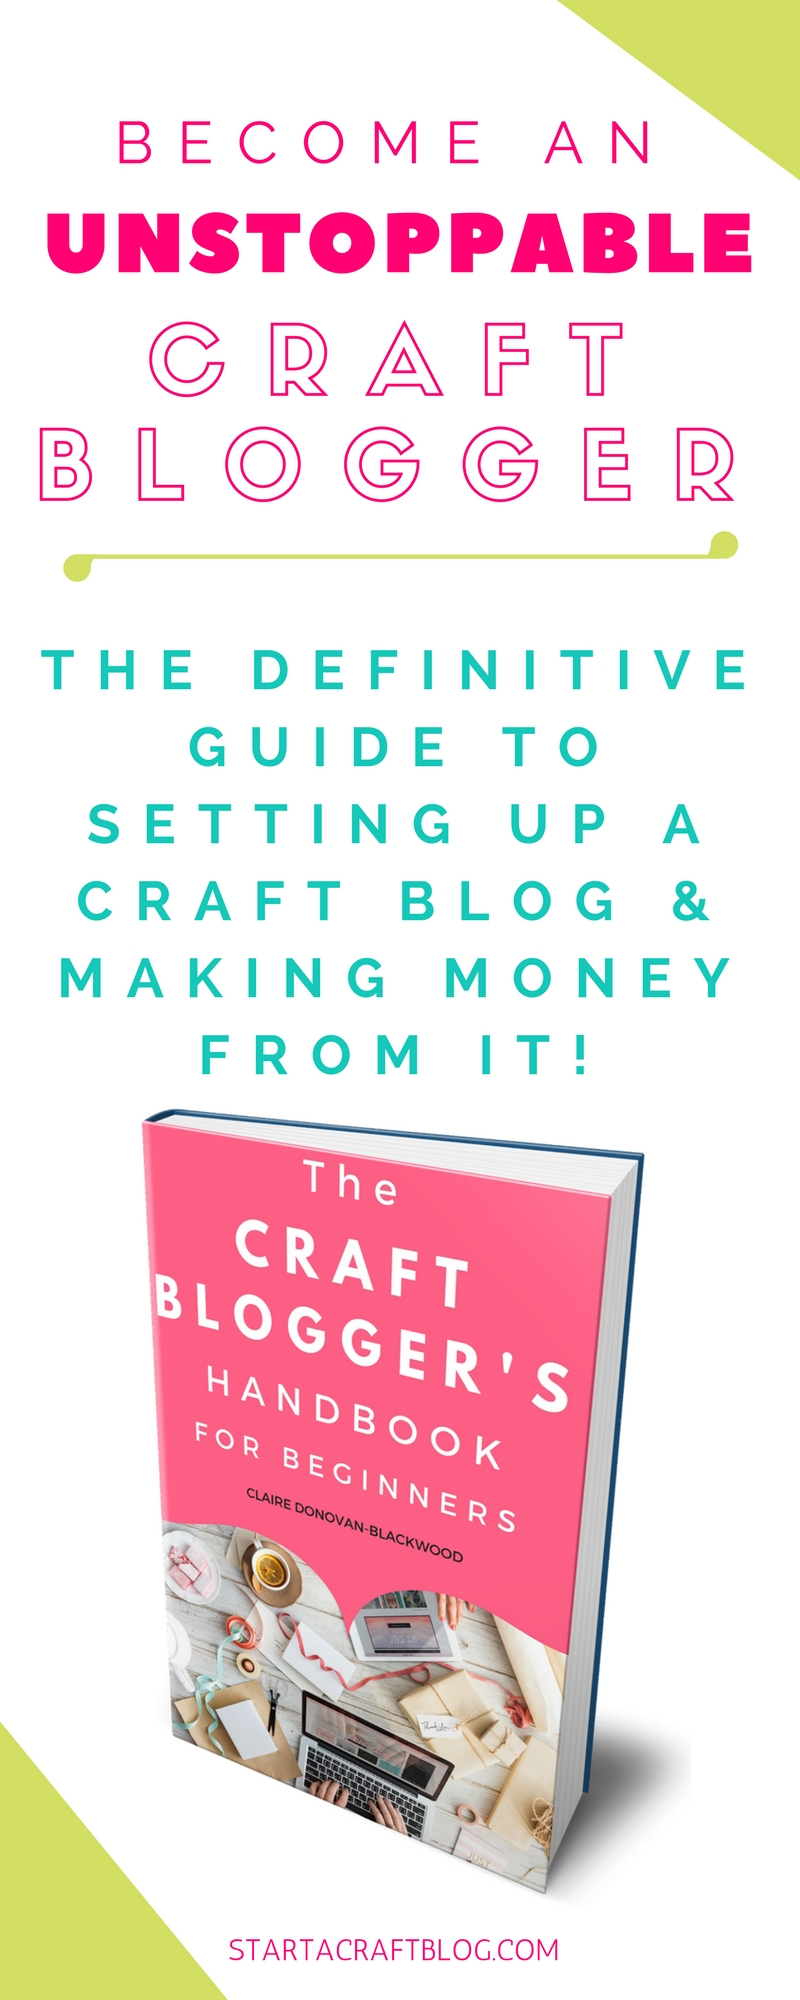 Are you ready to start a craft blog to be proud of? Grab your copy of the book and learn how to organize your ideas into content that can be read and shared by millions of people! The definitive guide to starting a craft blog in 2017 and beyond. Plus a 50 page printable bloggy business planner is available. #blogging #bloggingtips #blogger #craftblog